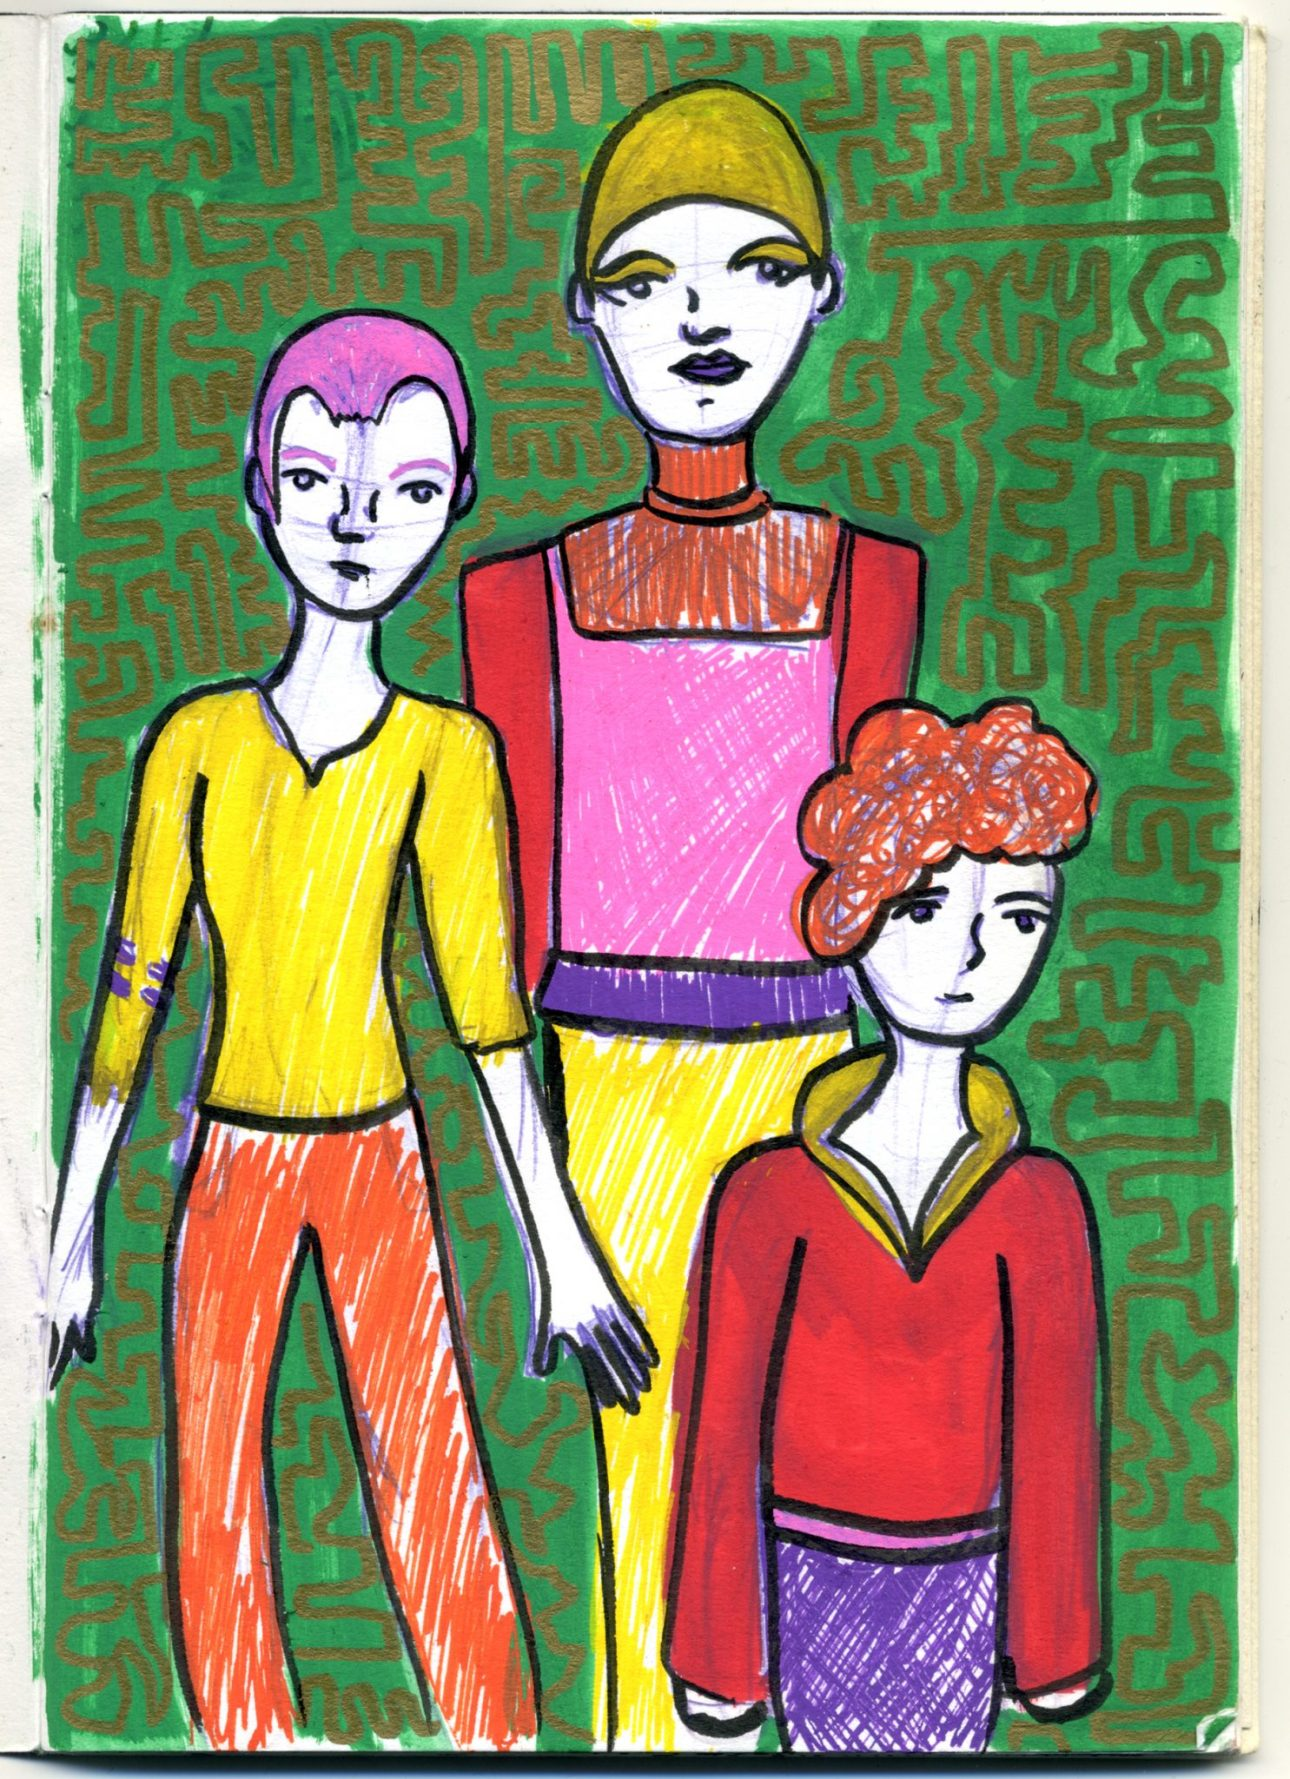 A posca pen sketch of three figures, using a limited palette of colours.